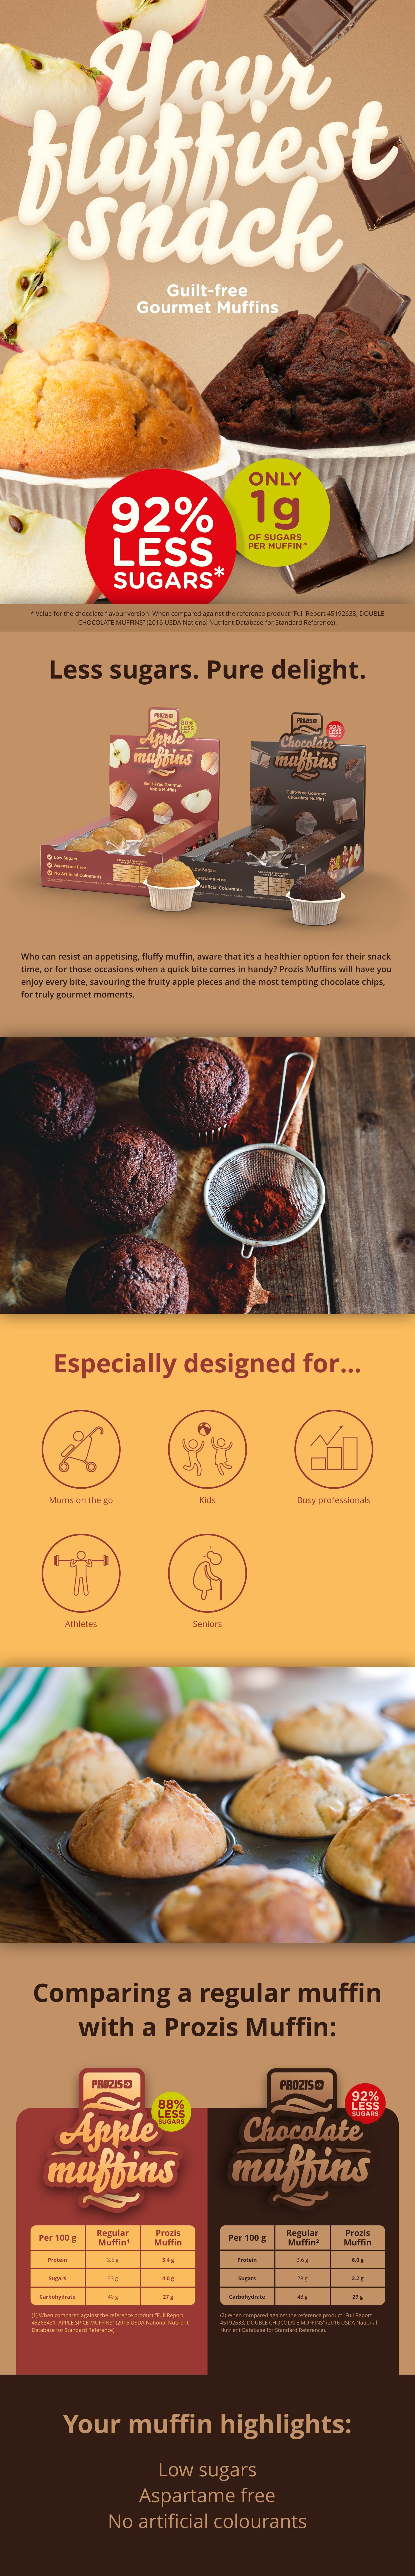 6 x Muffins - Low Sugars Muffins 60 g